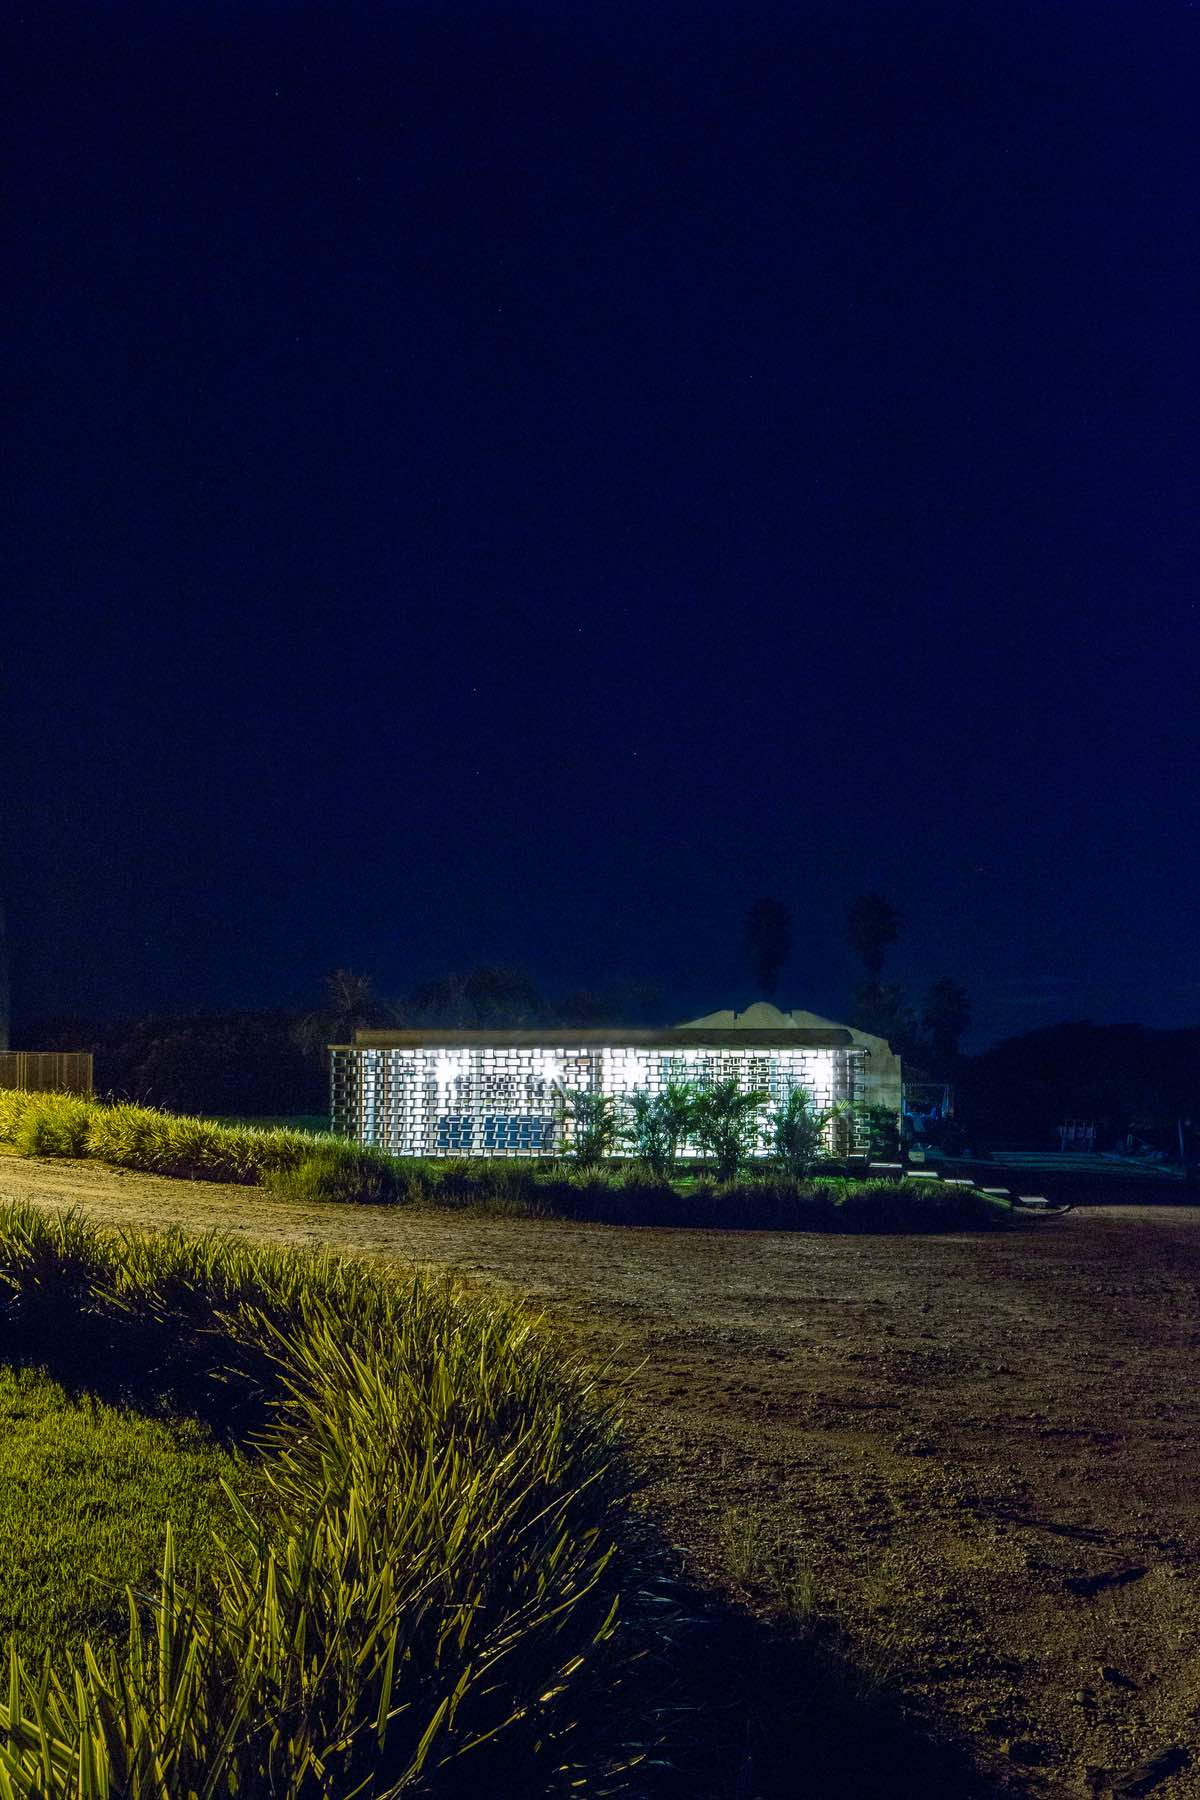 night view of the concrete pavilion